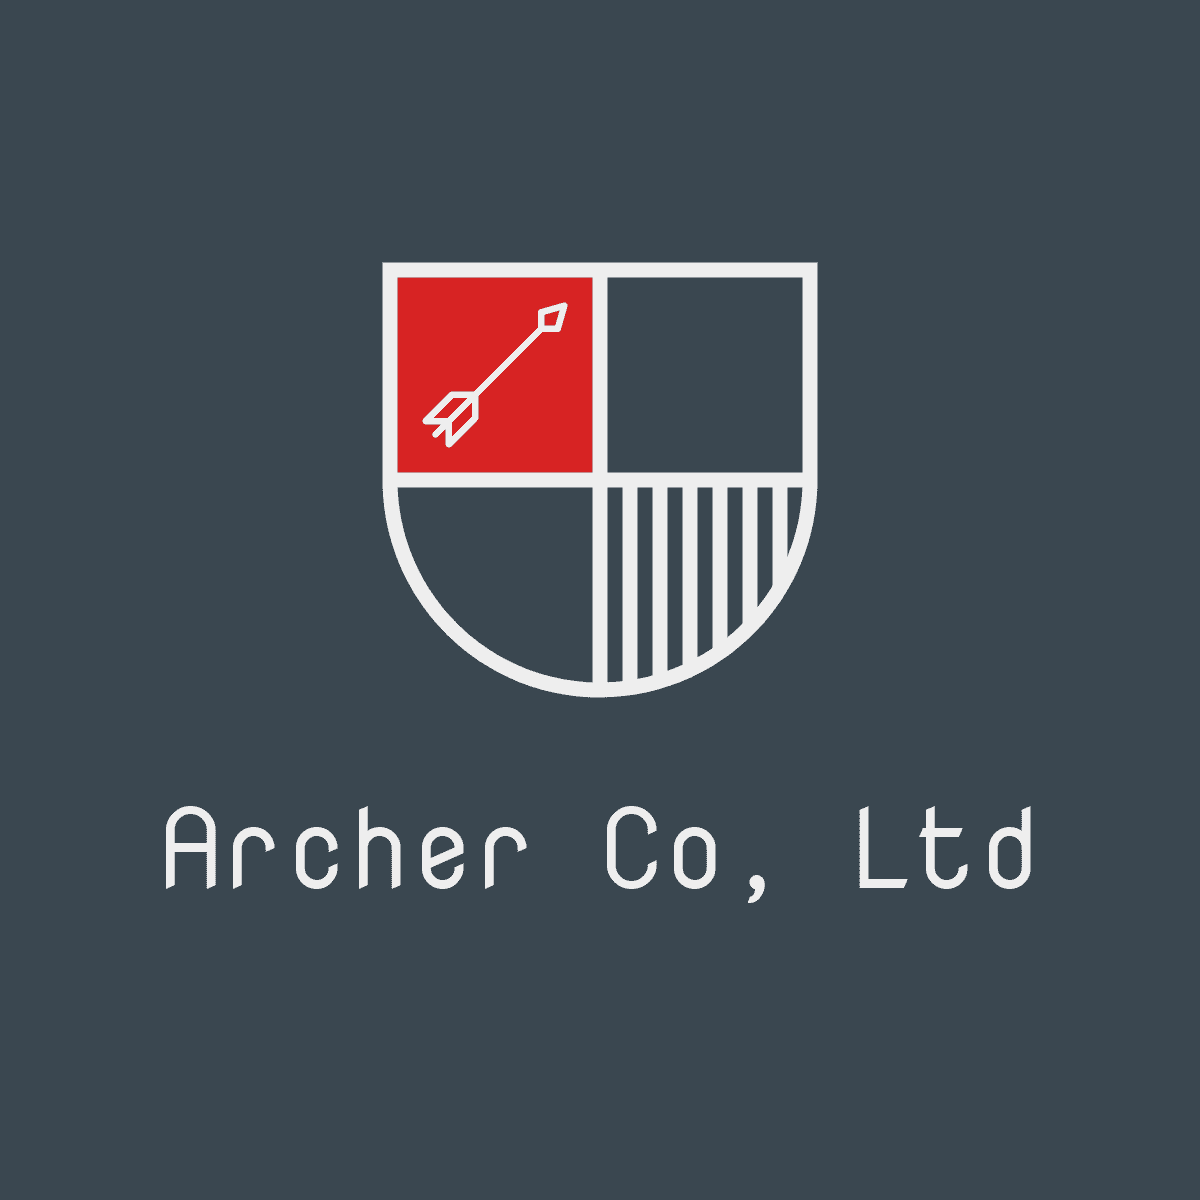 Products by Archer Co, Ltd